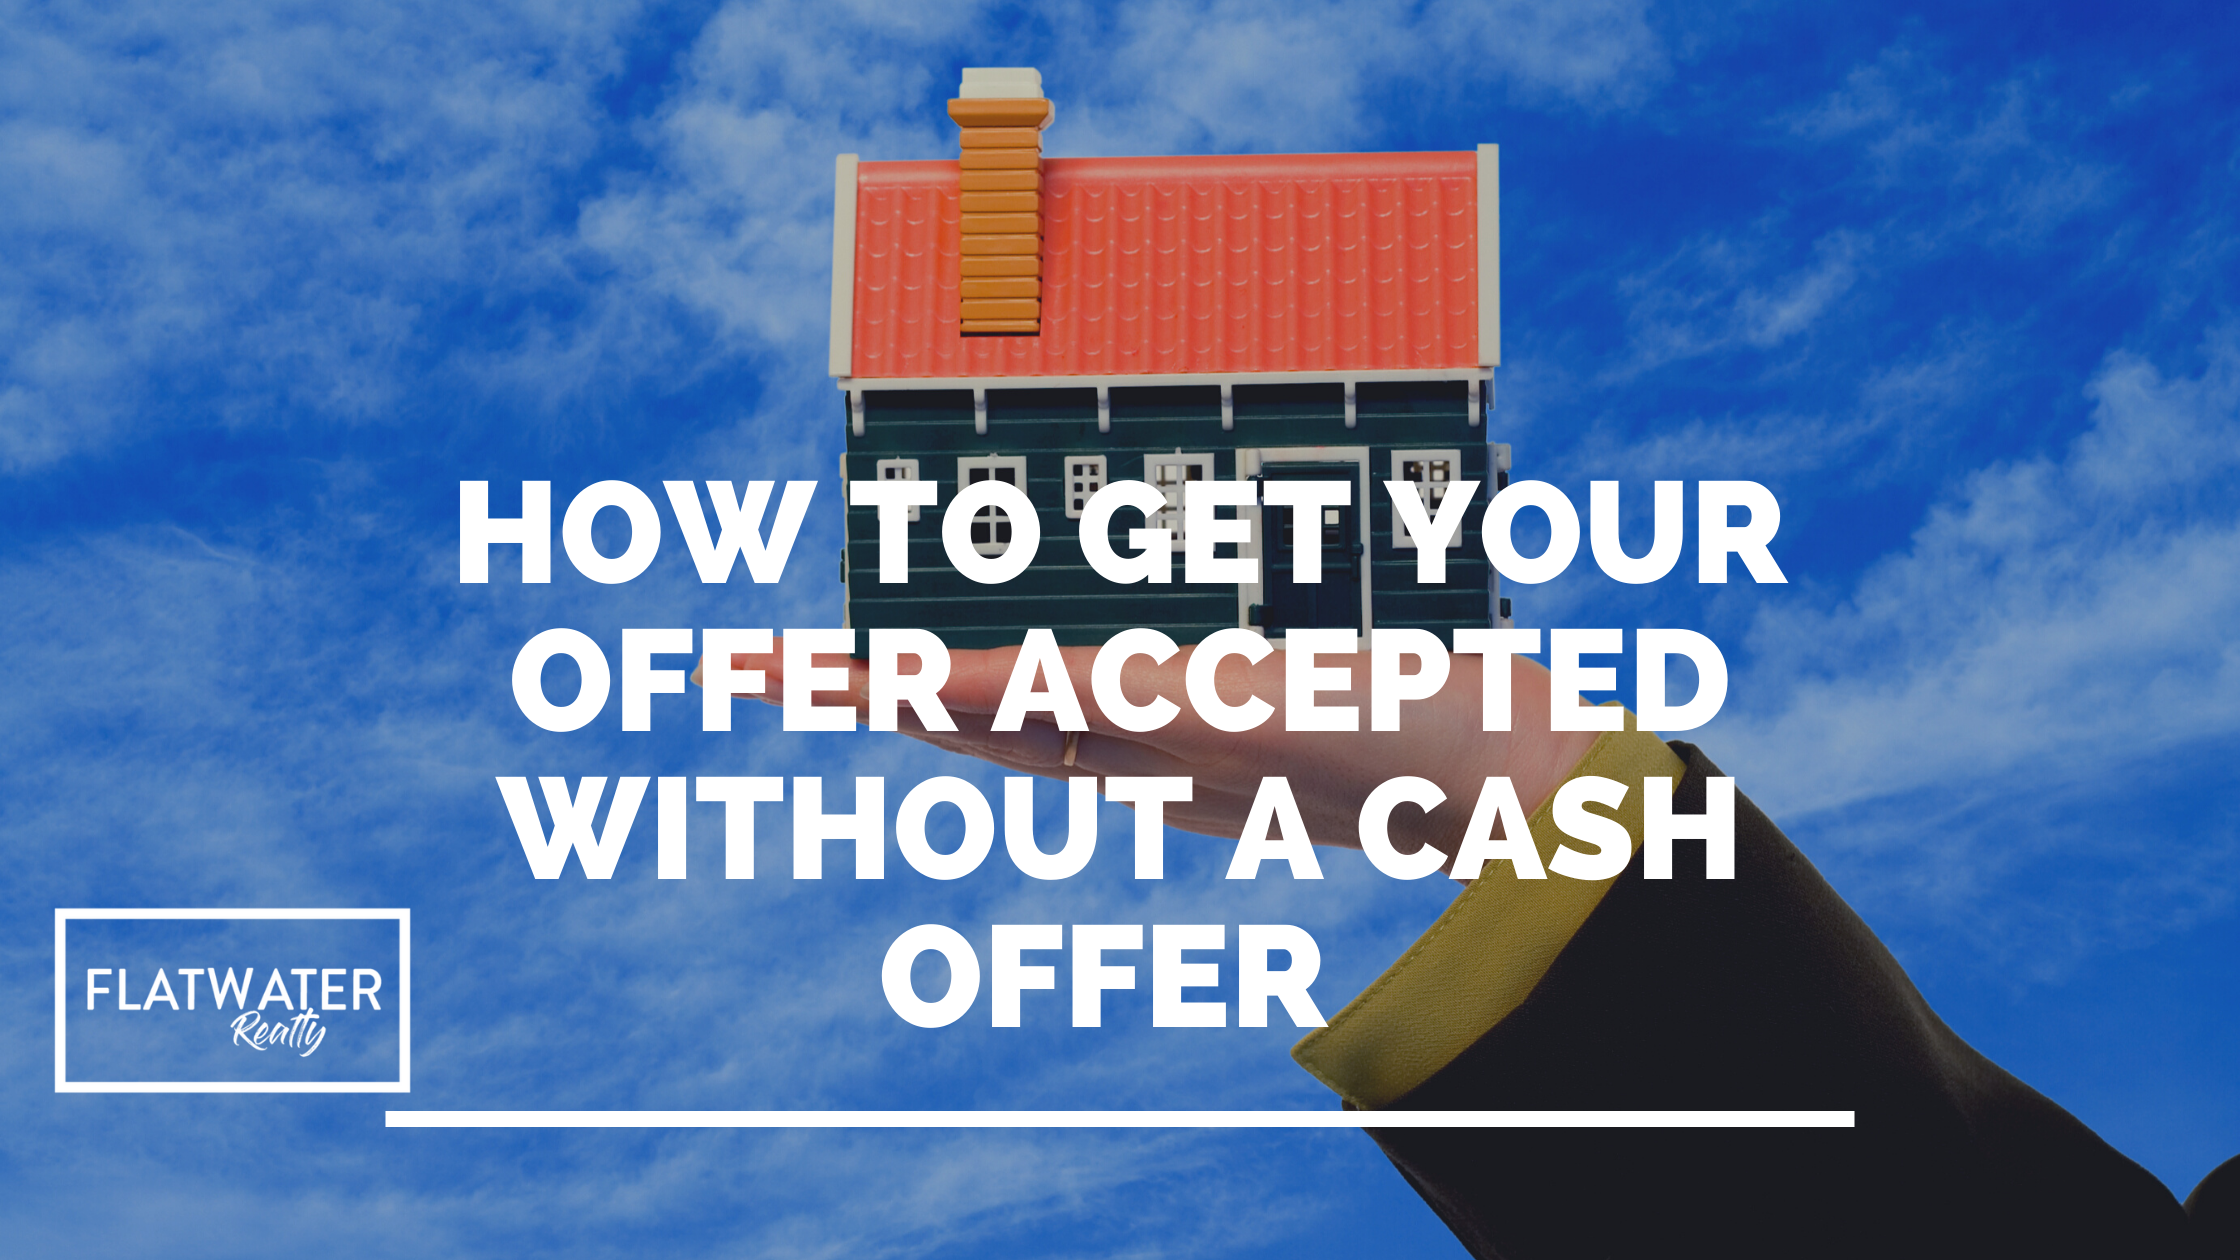 How to Get Your Offer Accepted Without a Cash Offer